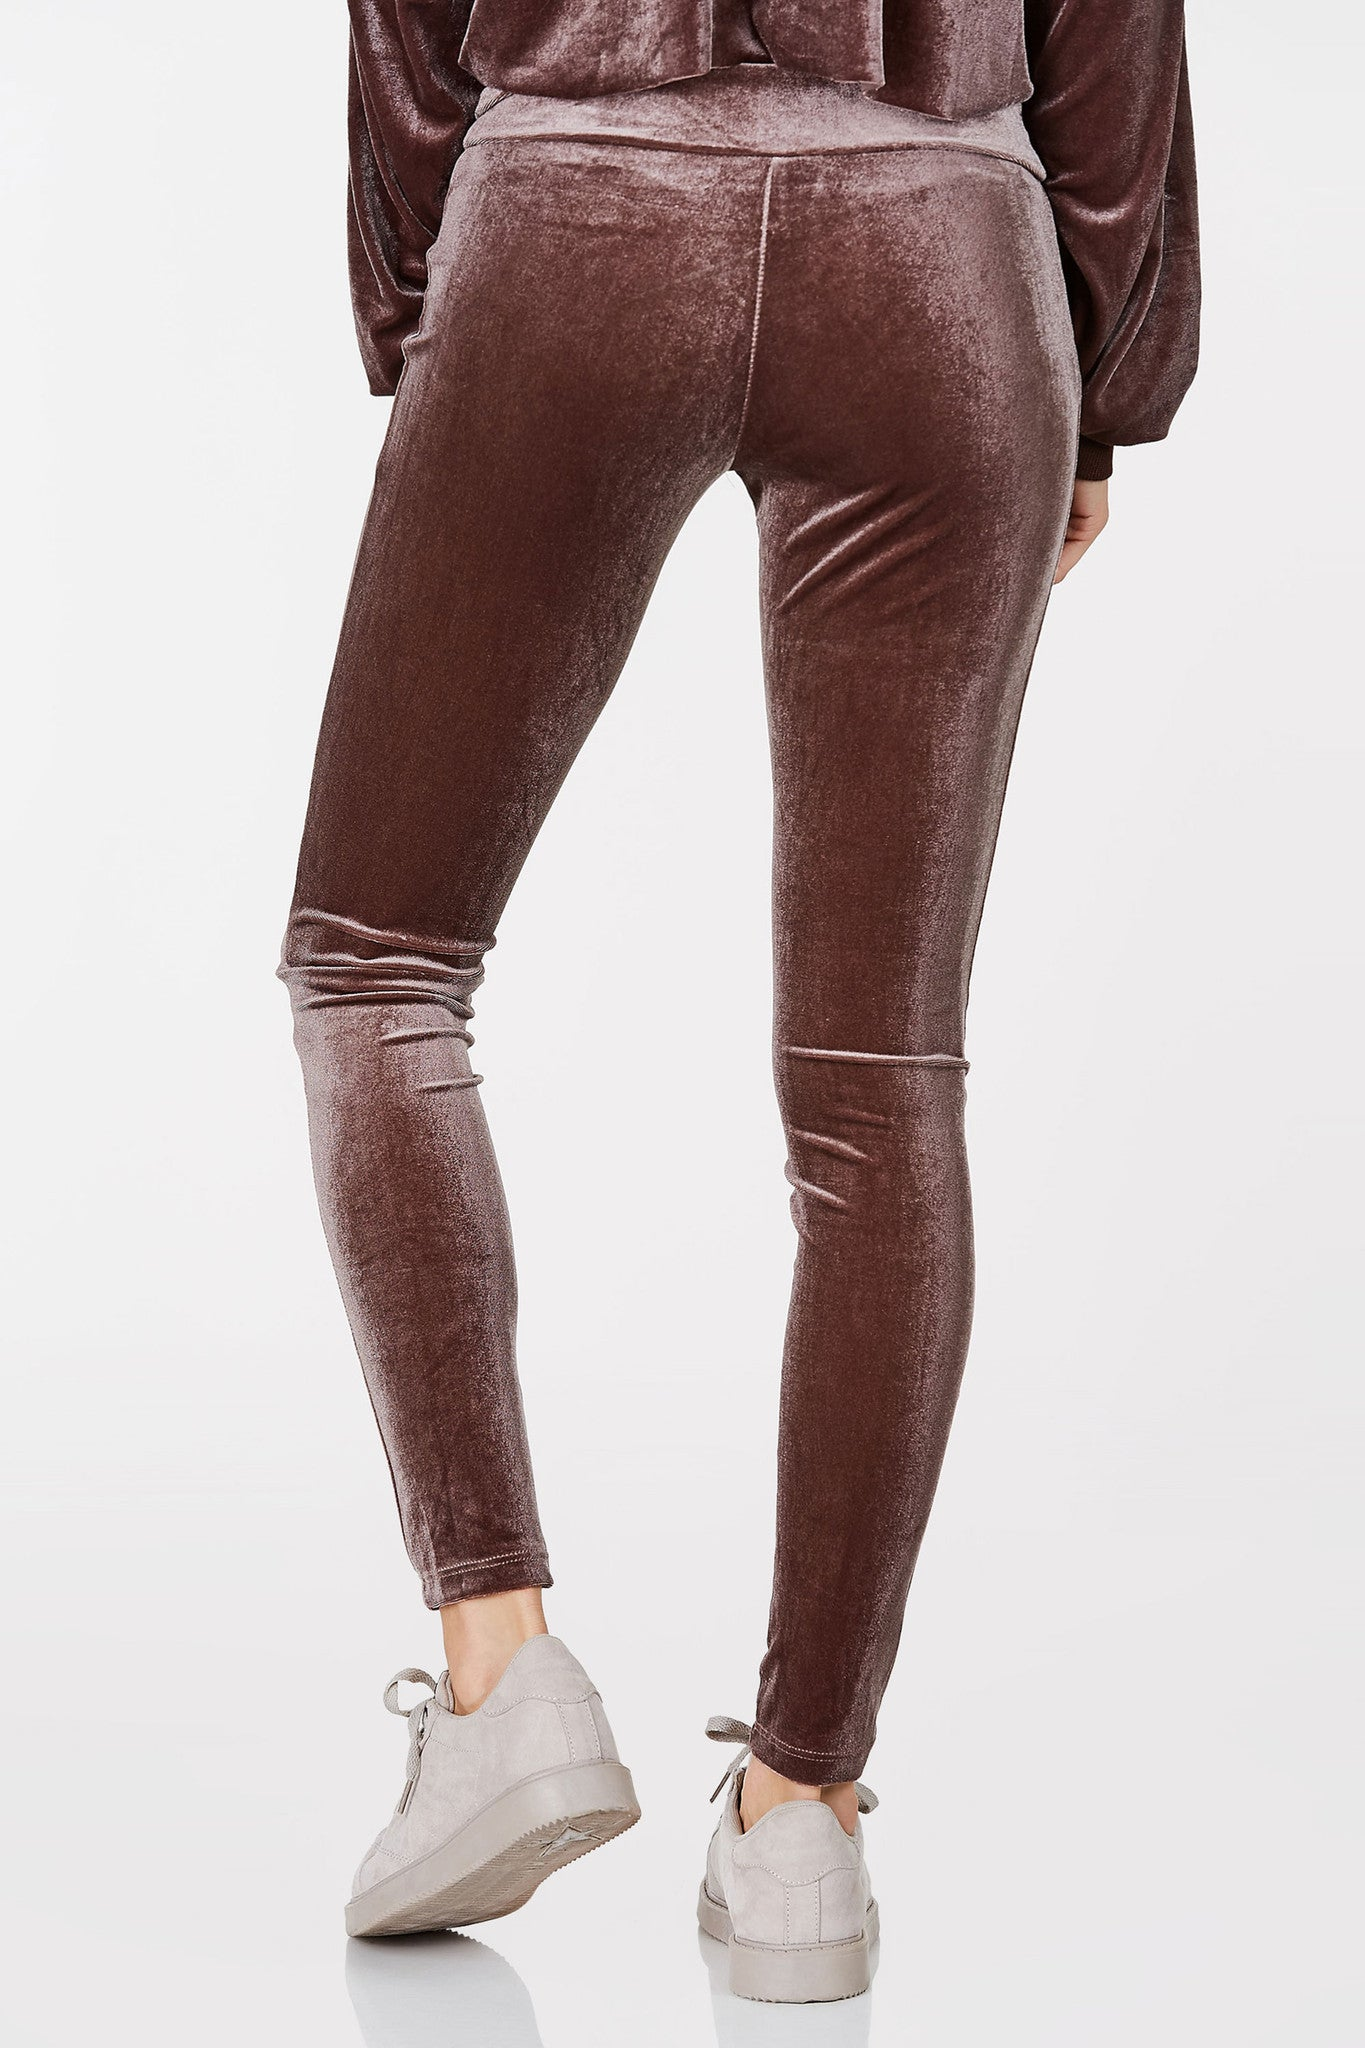 Basic stretchy mid rise leggings with velvet finish. Fold over waistband with straight hem.